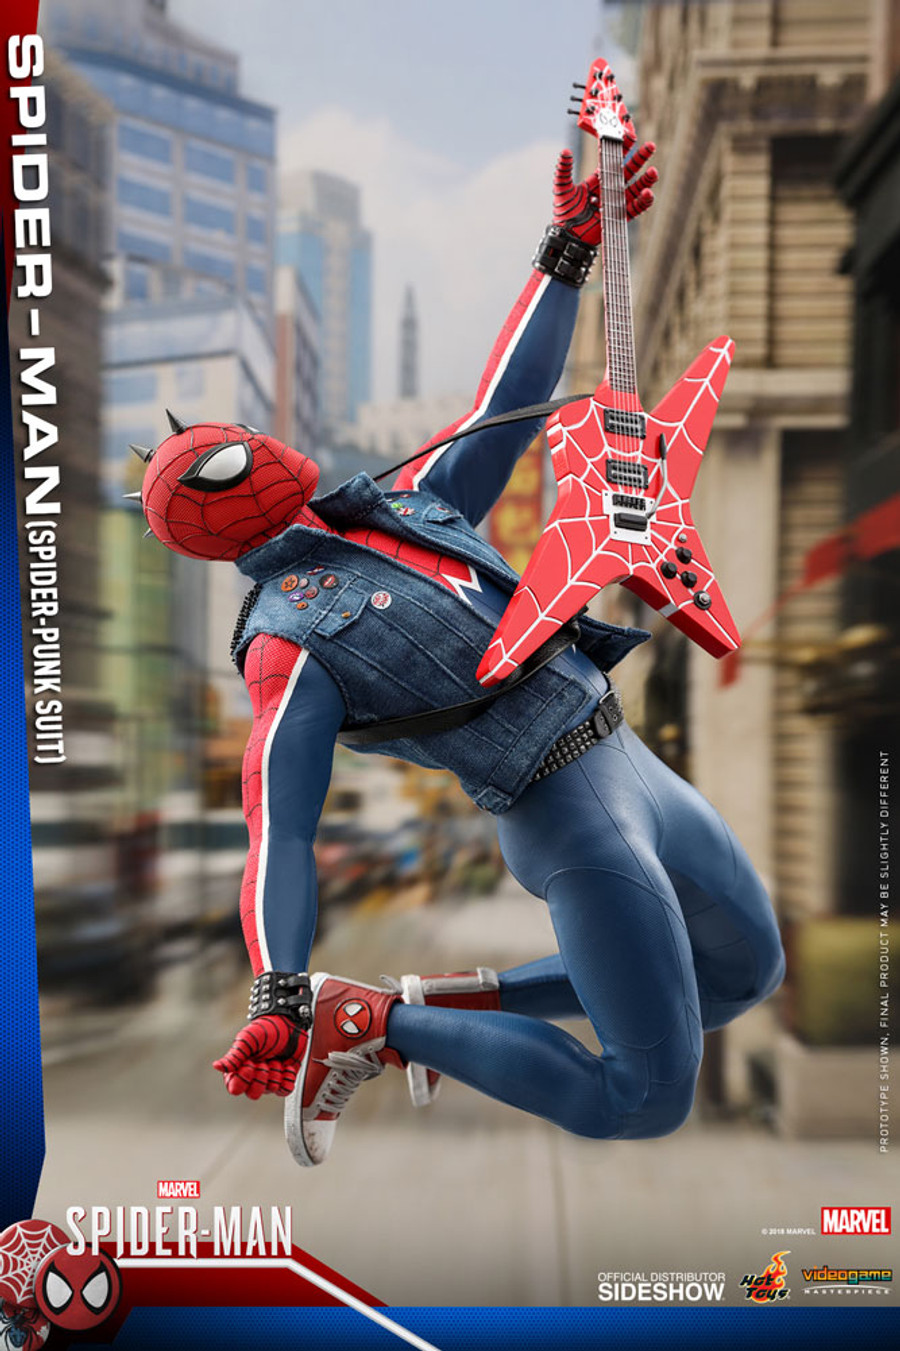 Hot Toys - Marvel's Spider-Man - Spider-Punk Suit Spider-Man